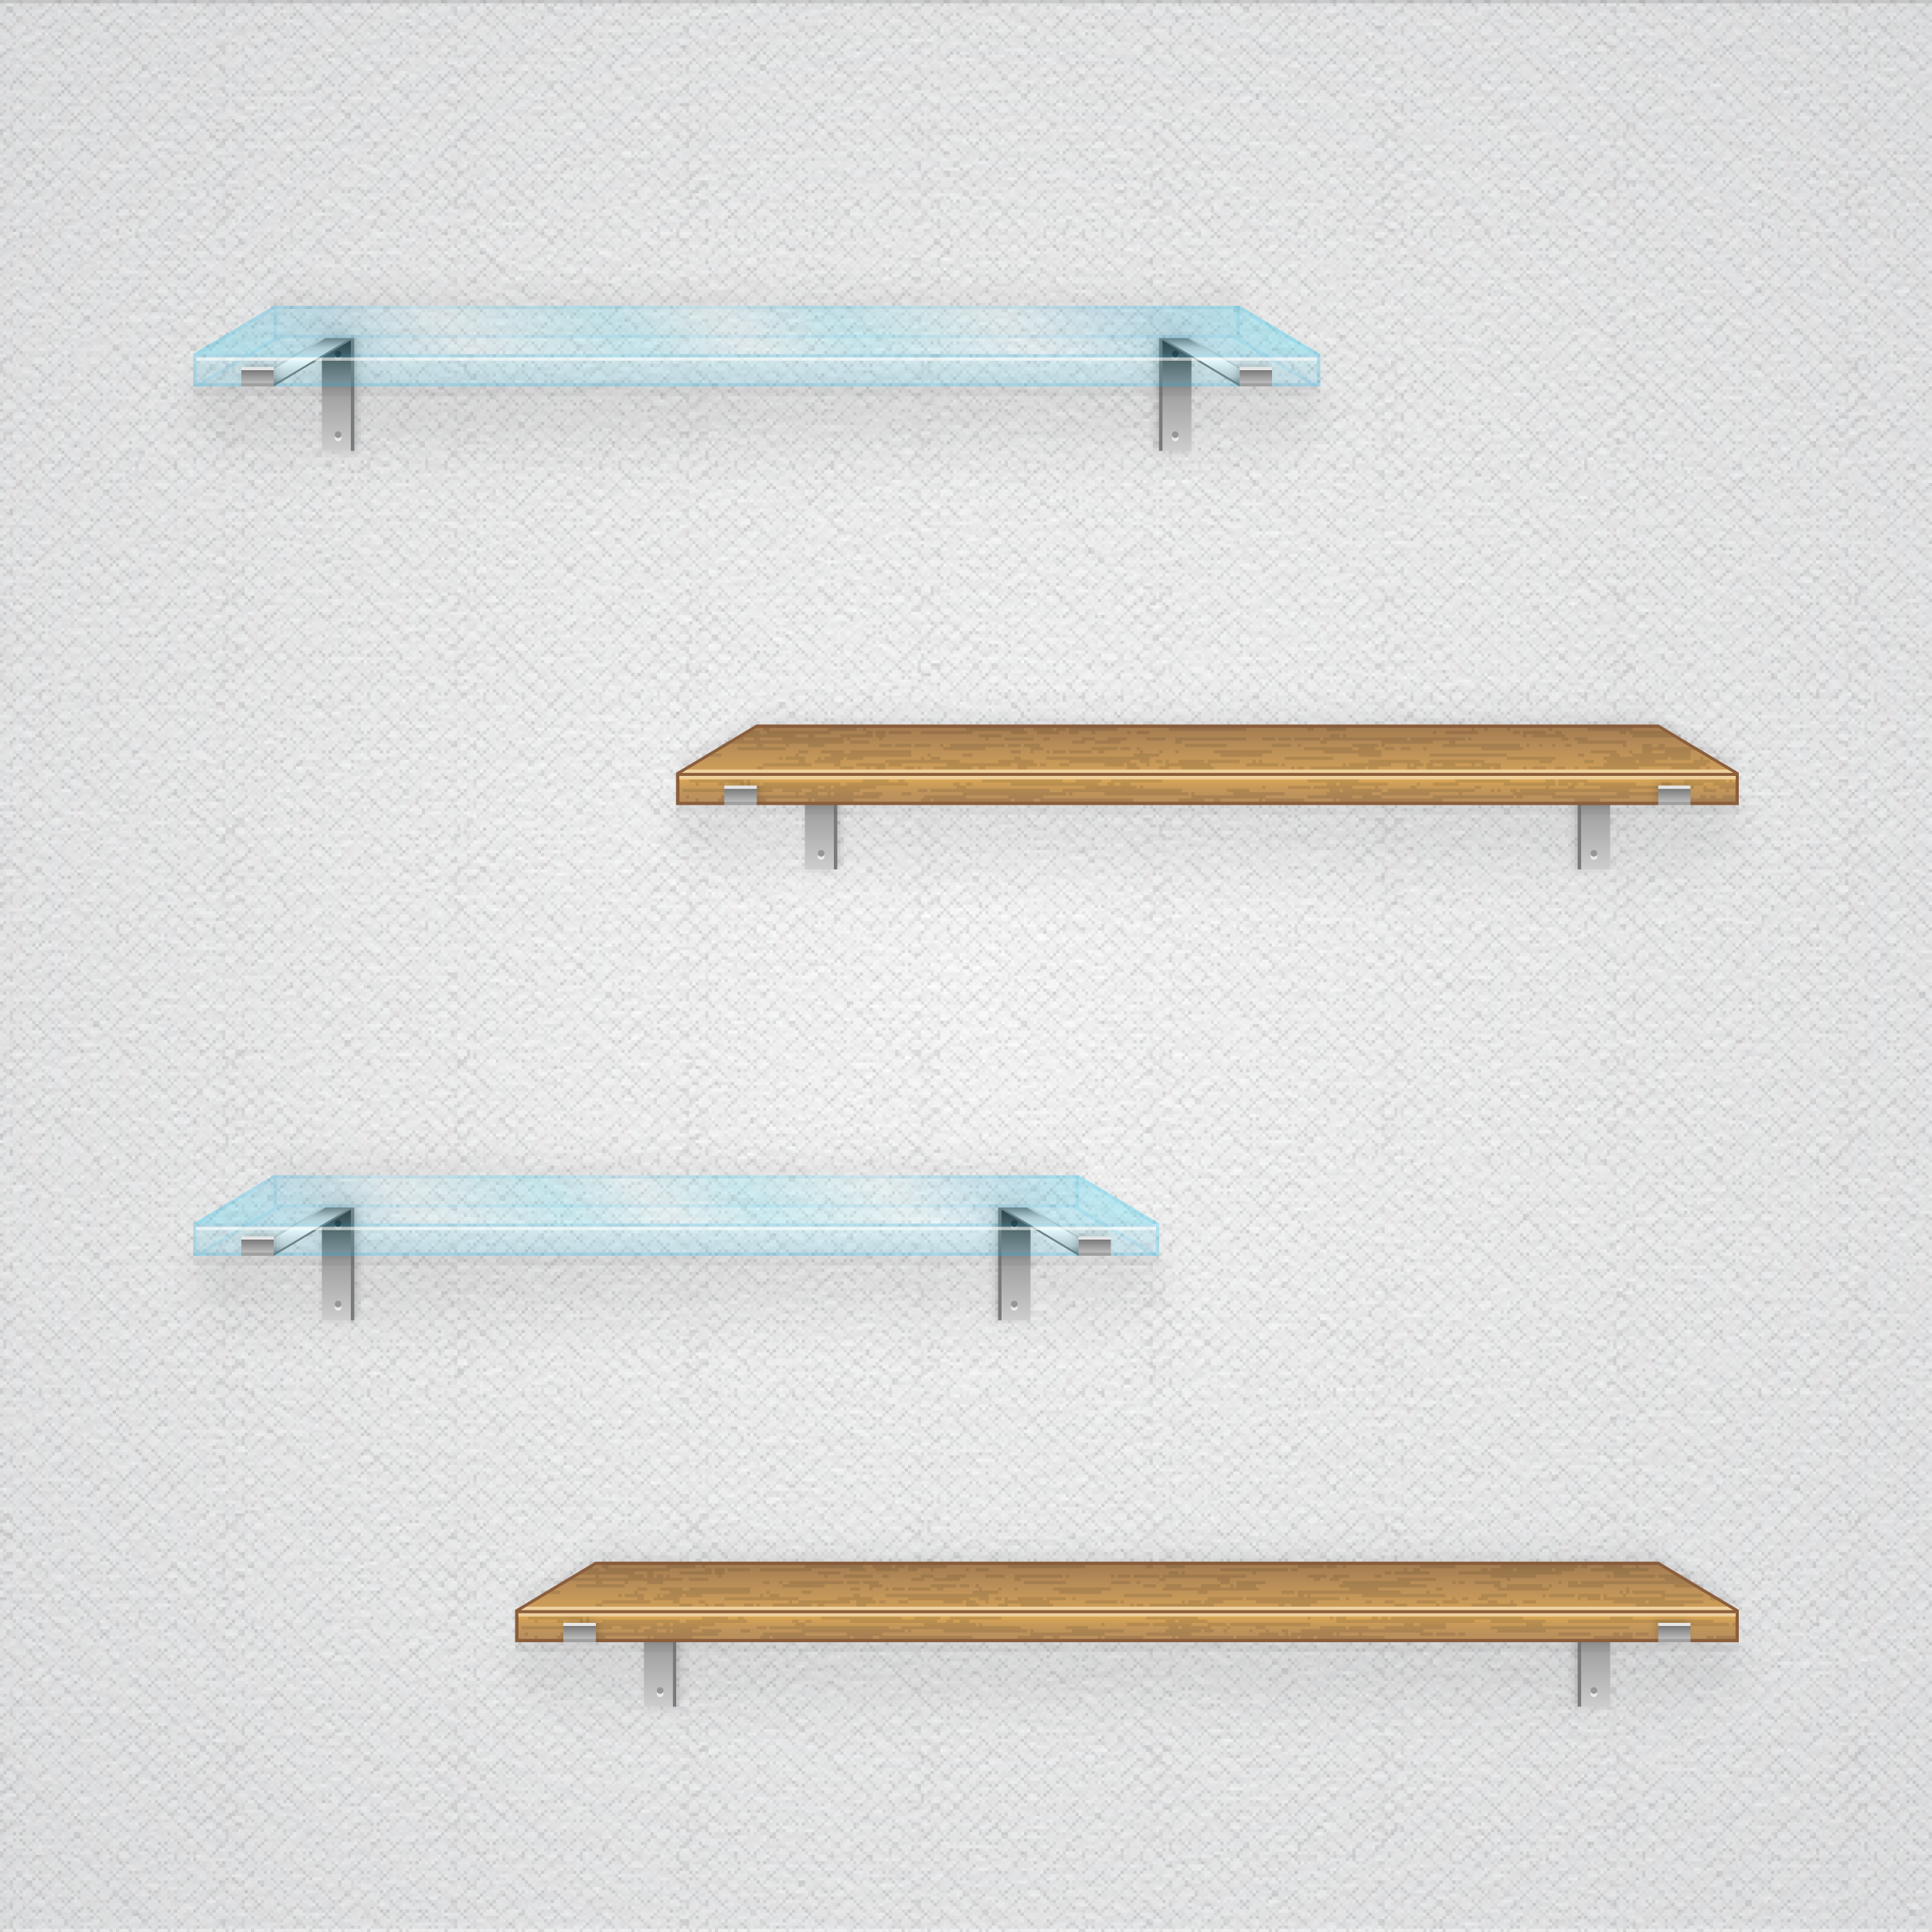 Glass and Wooden Shelves by duceduc on DeviantArt